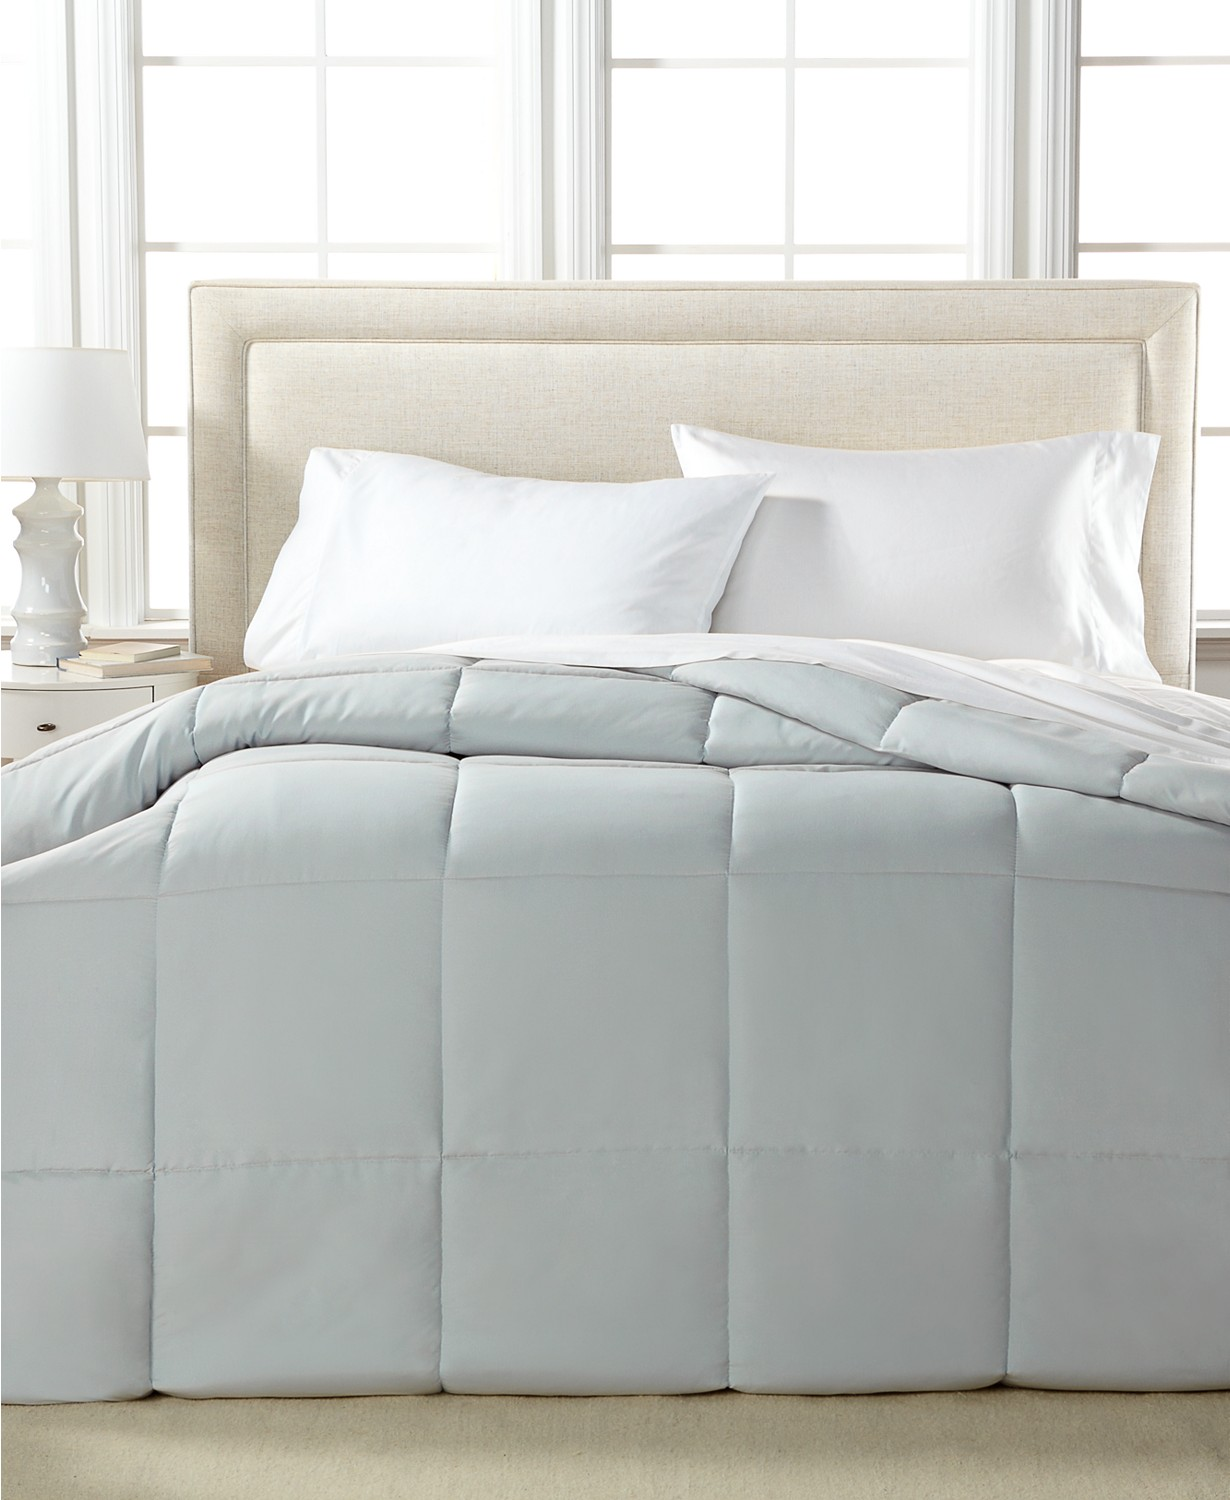 (85% OFF Deal) Lightweight Microfiber Color Down Alternative Comforter Any Size $19.99